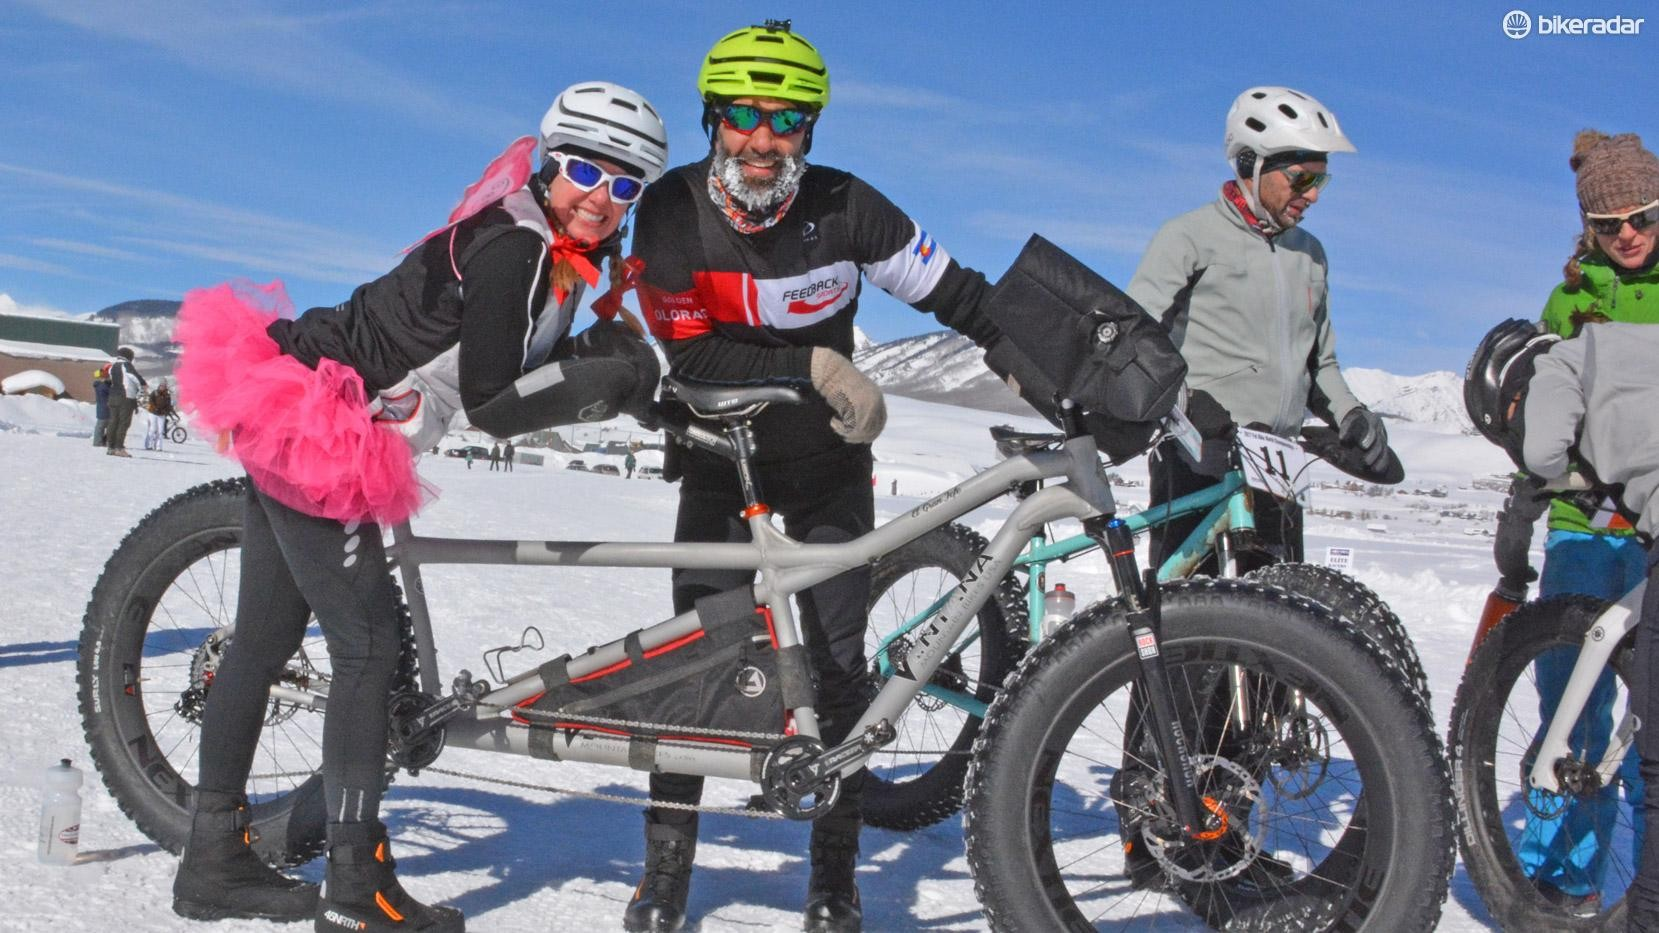 This fat bike crushed the course with twice the power